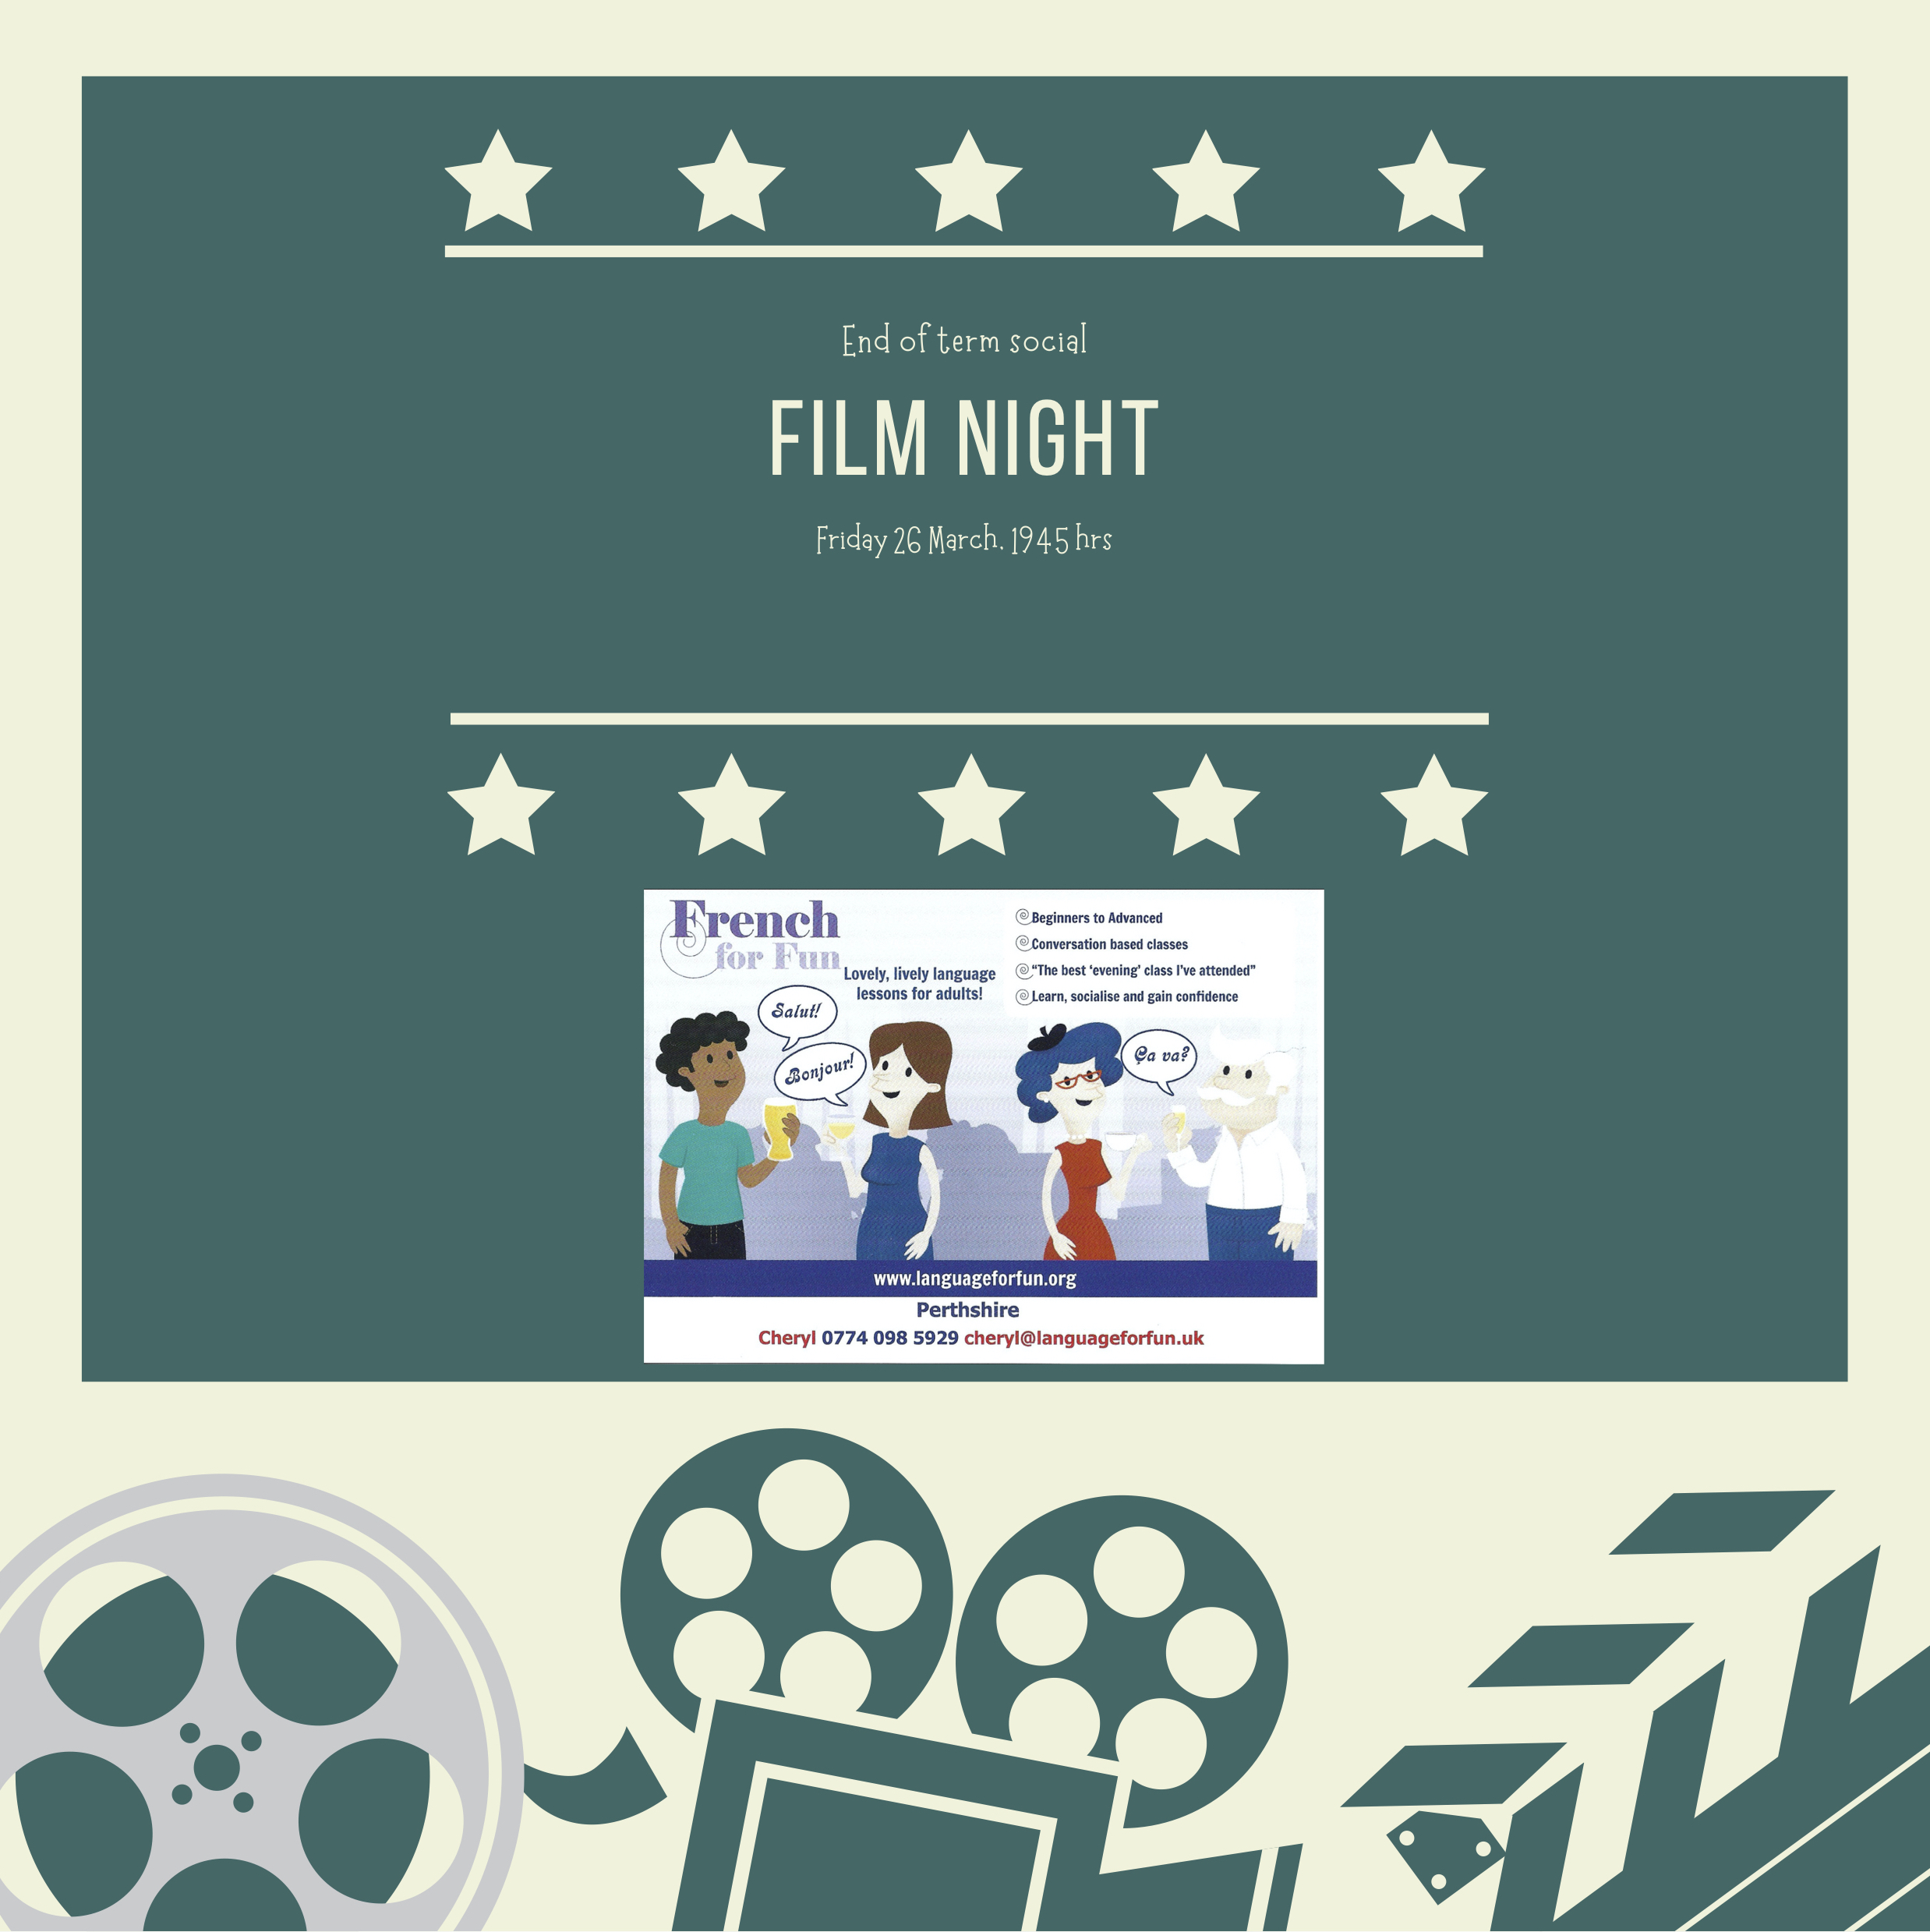 French for Fun in Perthshire – film night